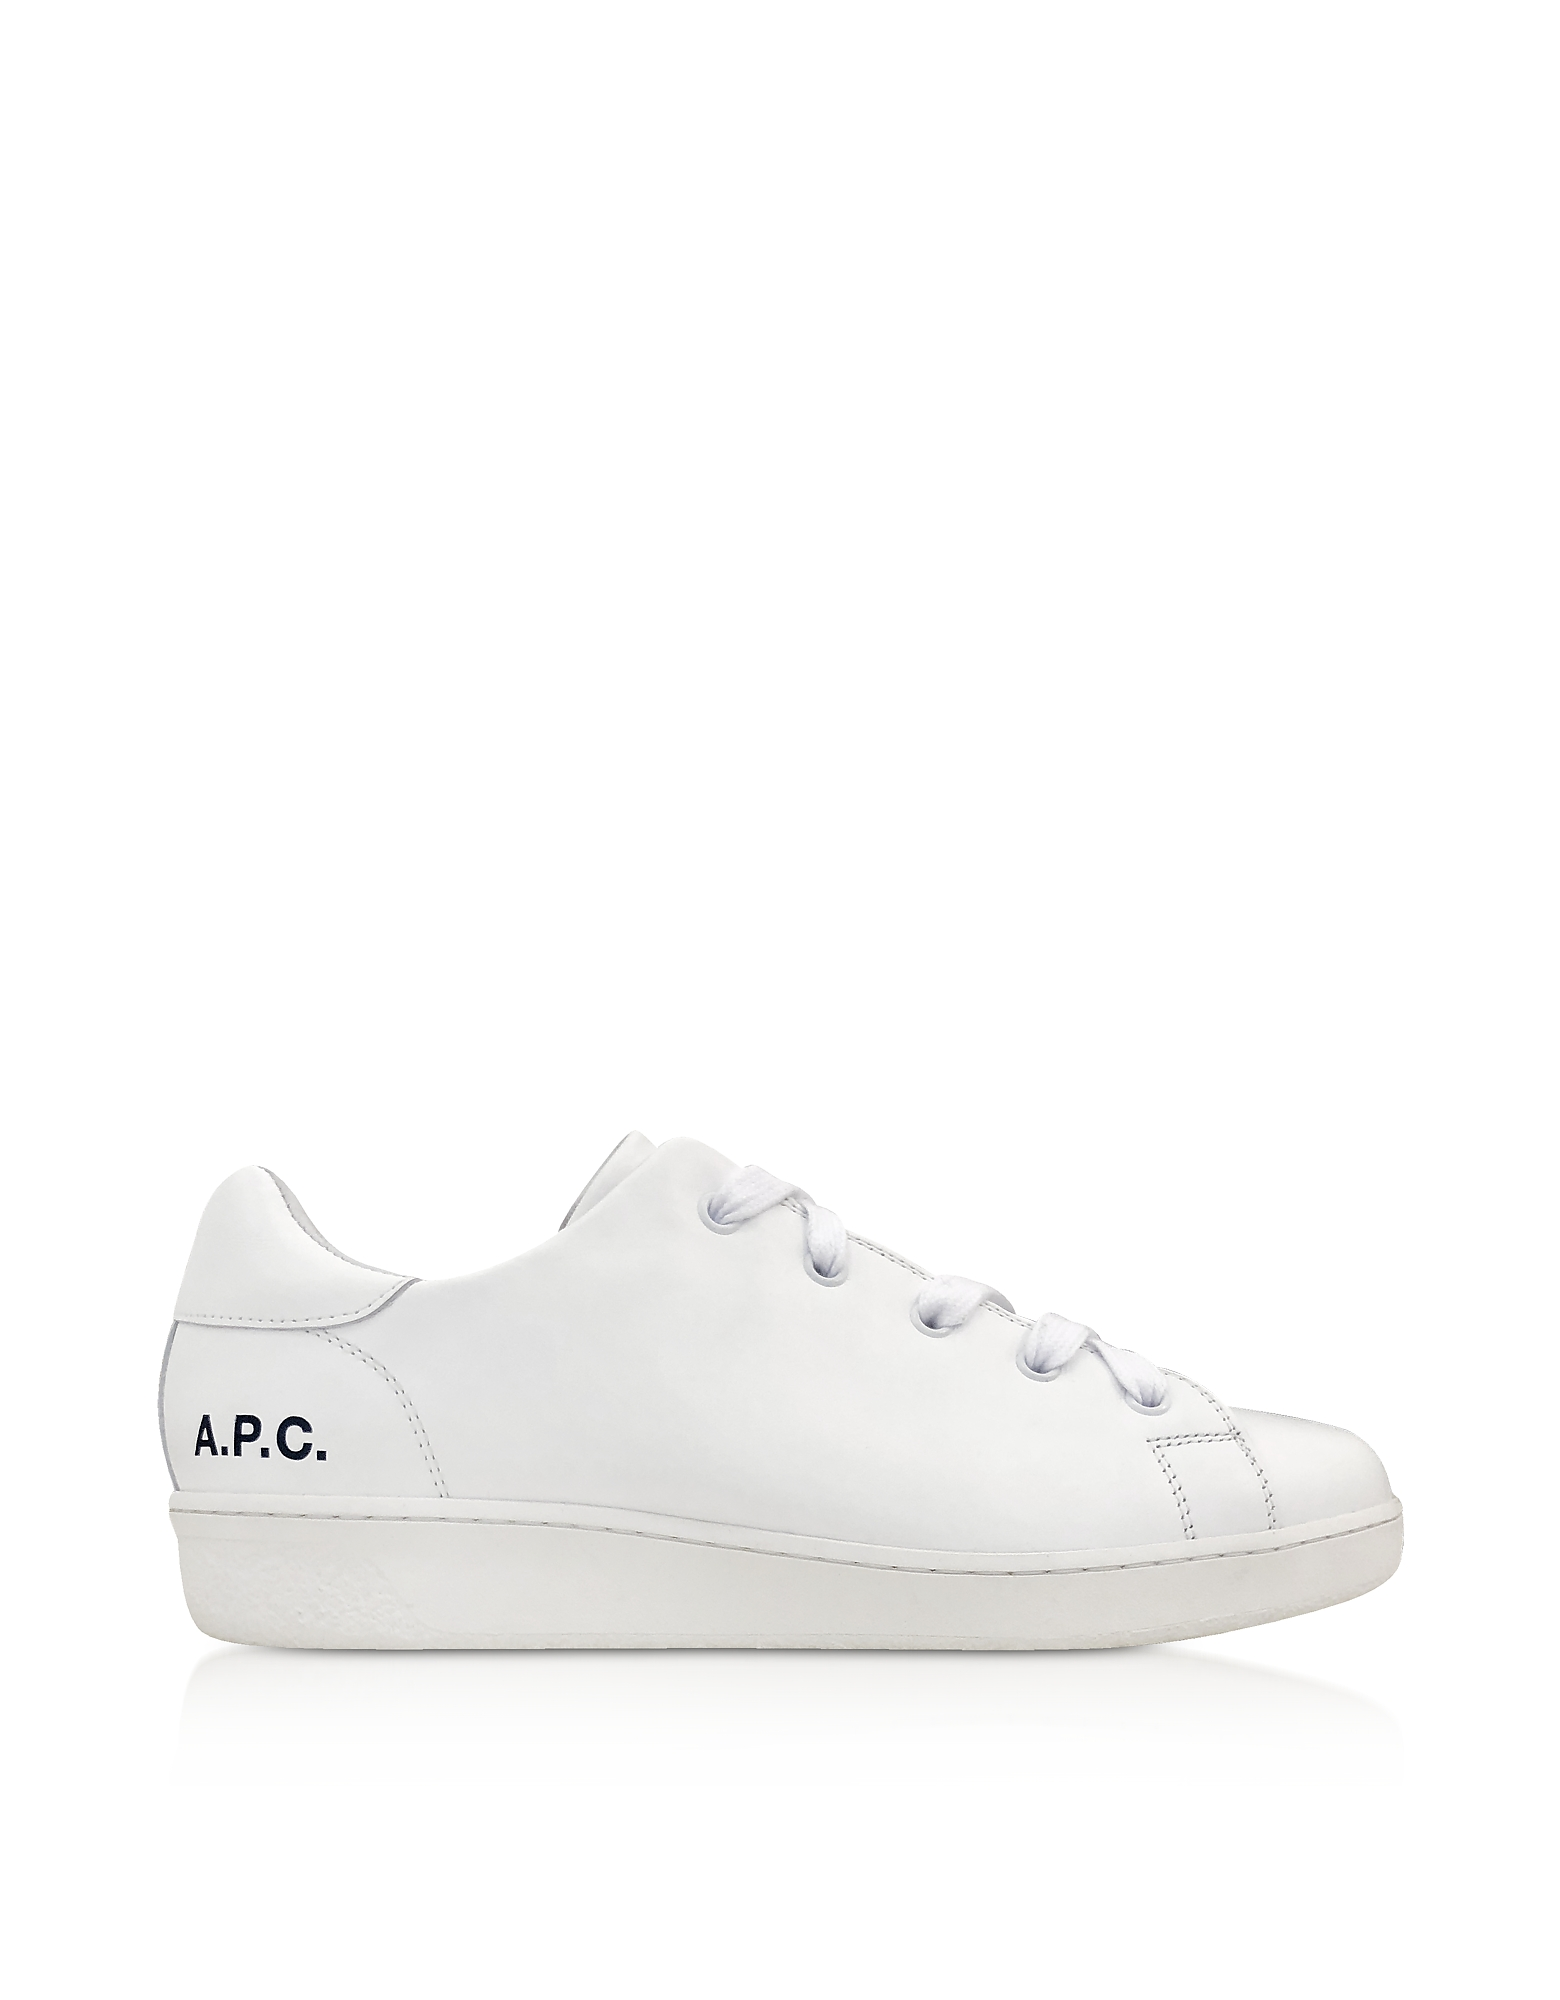 Minimal Tennis Sneakers Low Top da Donna in Pelle Bianco Ottico